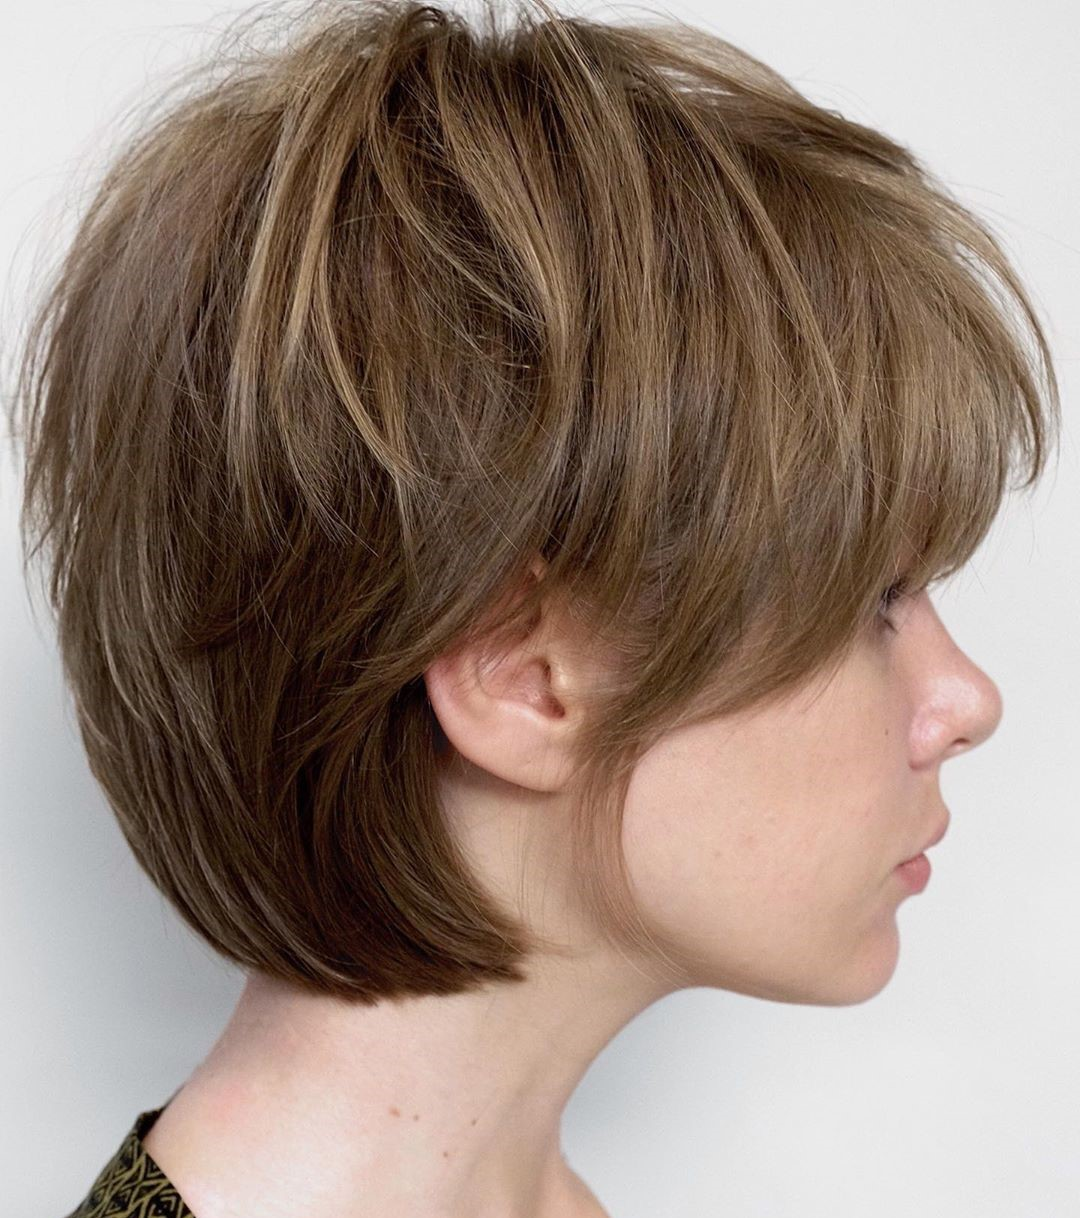 Women's Textured Short Hairstyle with Bangs